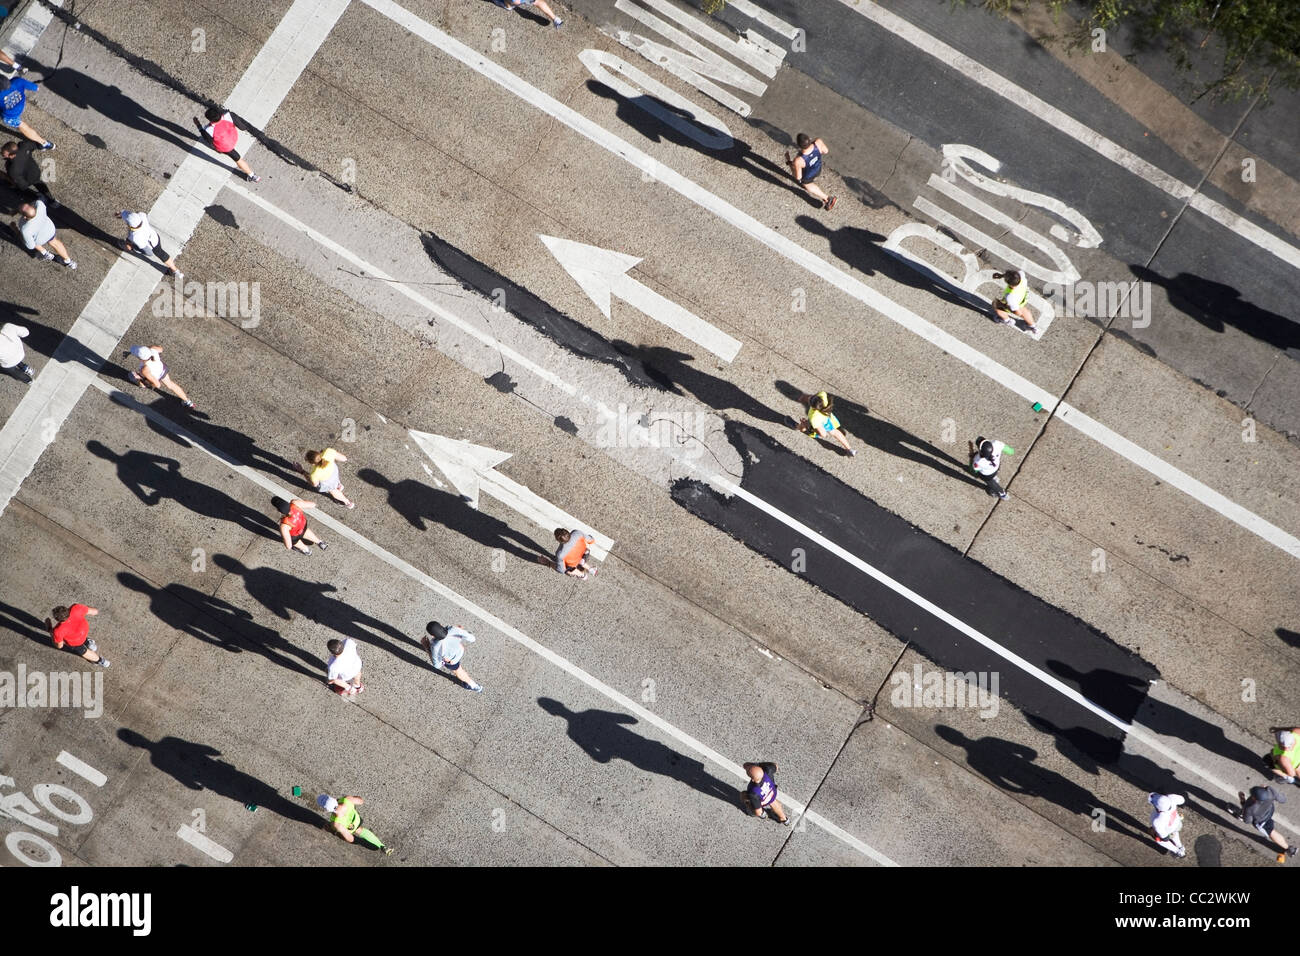 USA, New York City, New York City Marathon as seen from above - Stock Image